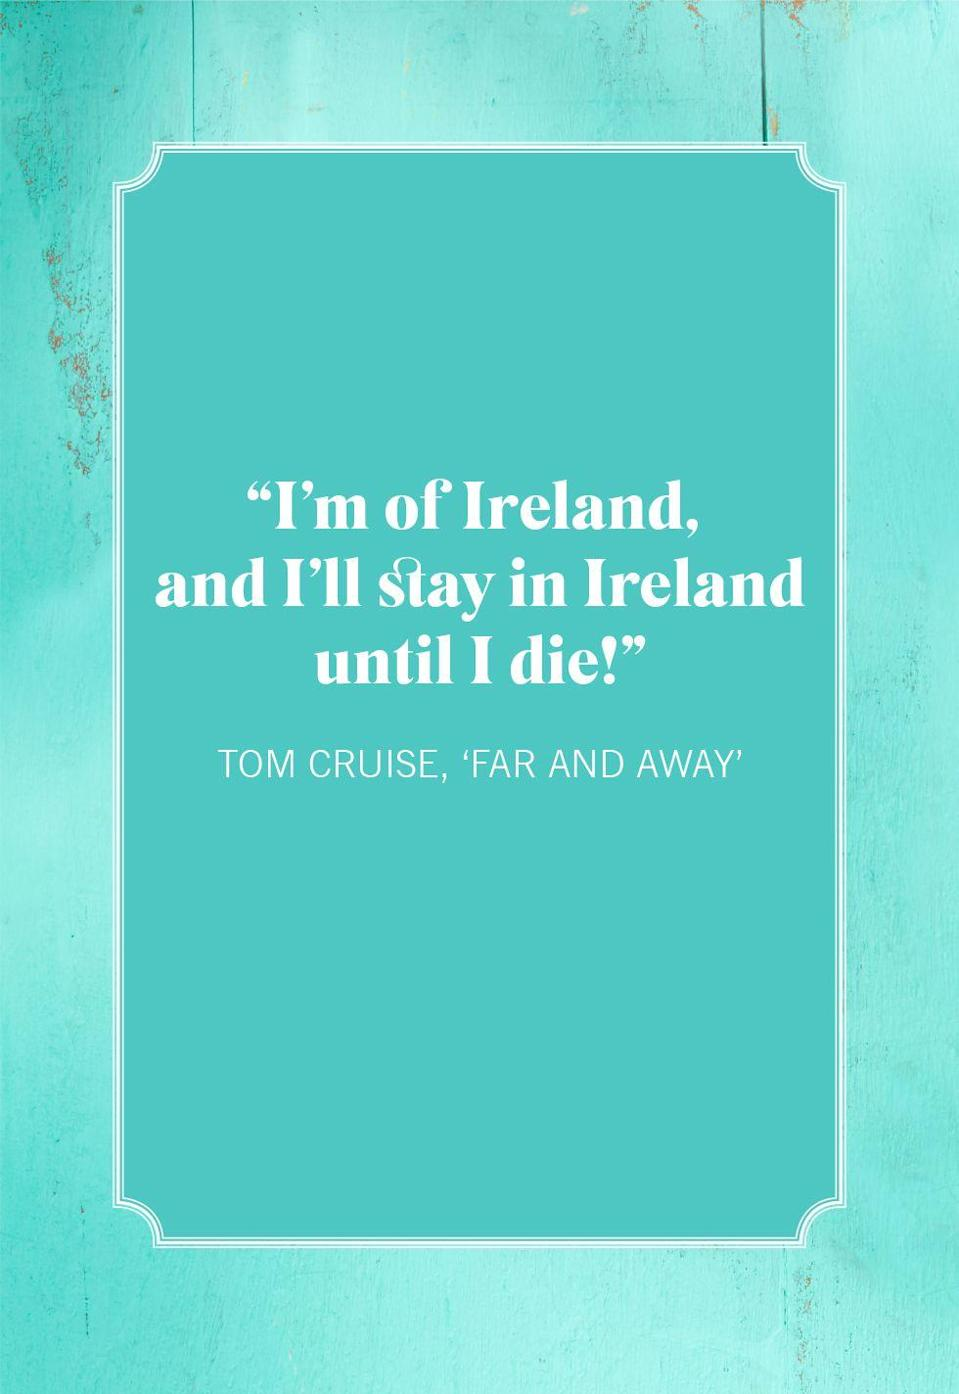 "<p>""I'm of Ireland, and I'll stay in Ireland until I die!""</p>"